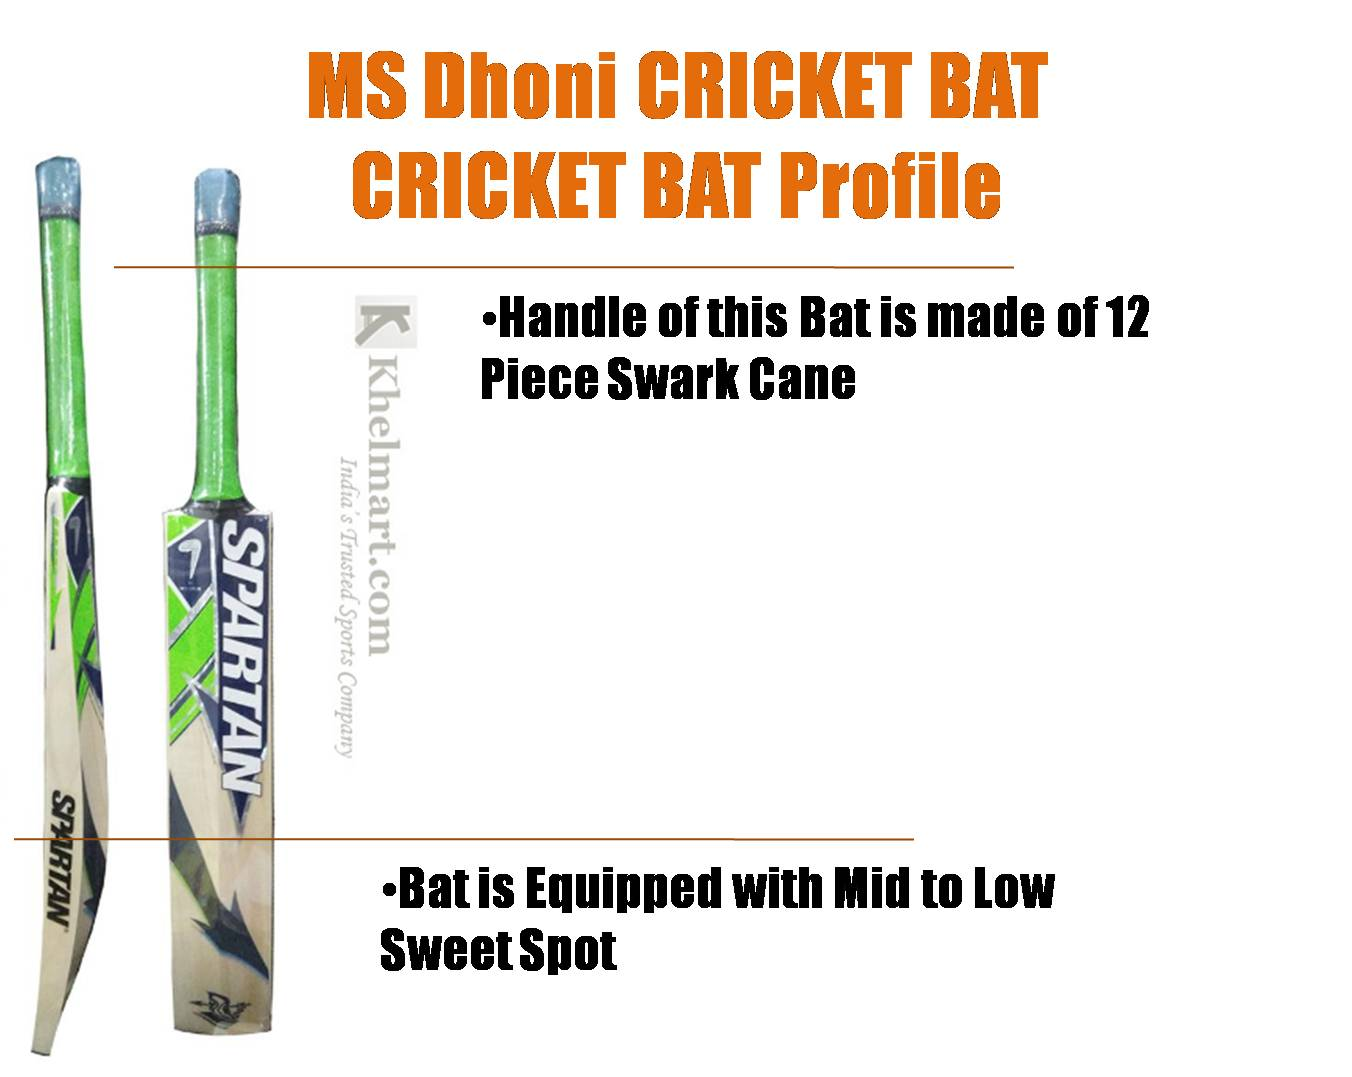 MSDhoni_Cricket_Bat_Khelmart2